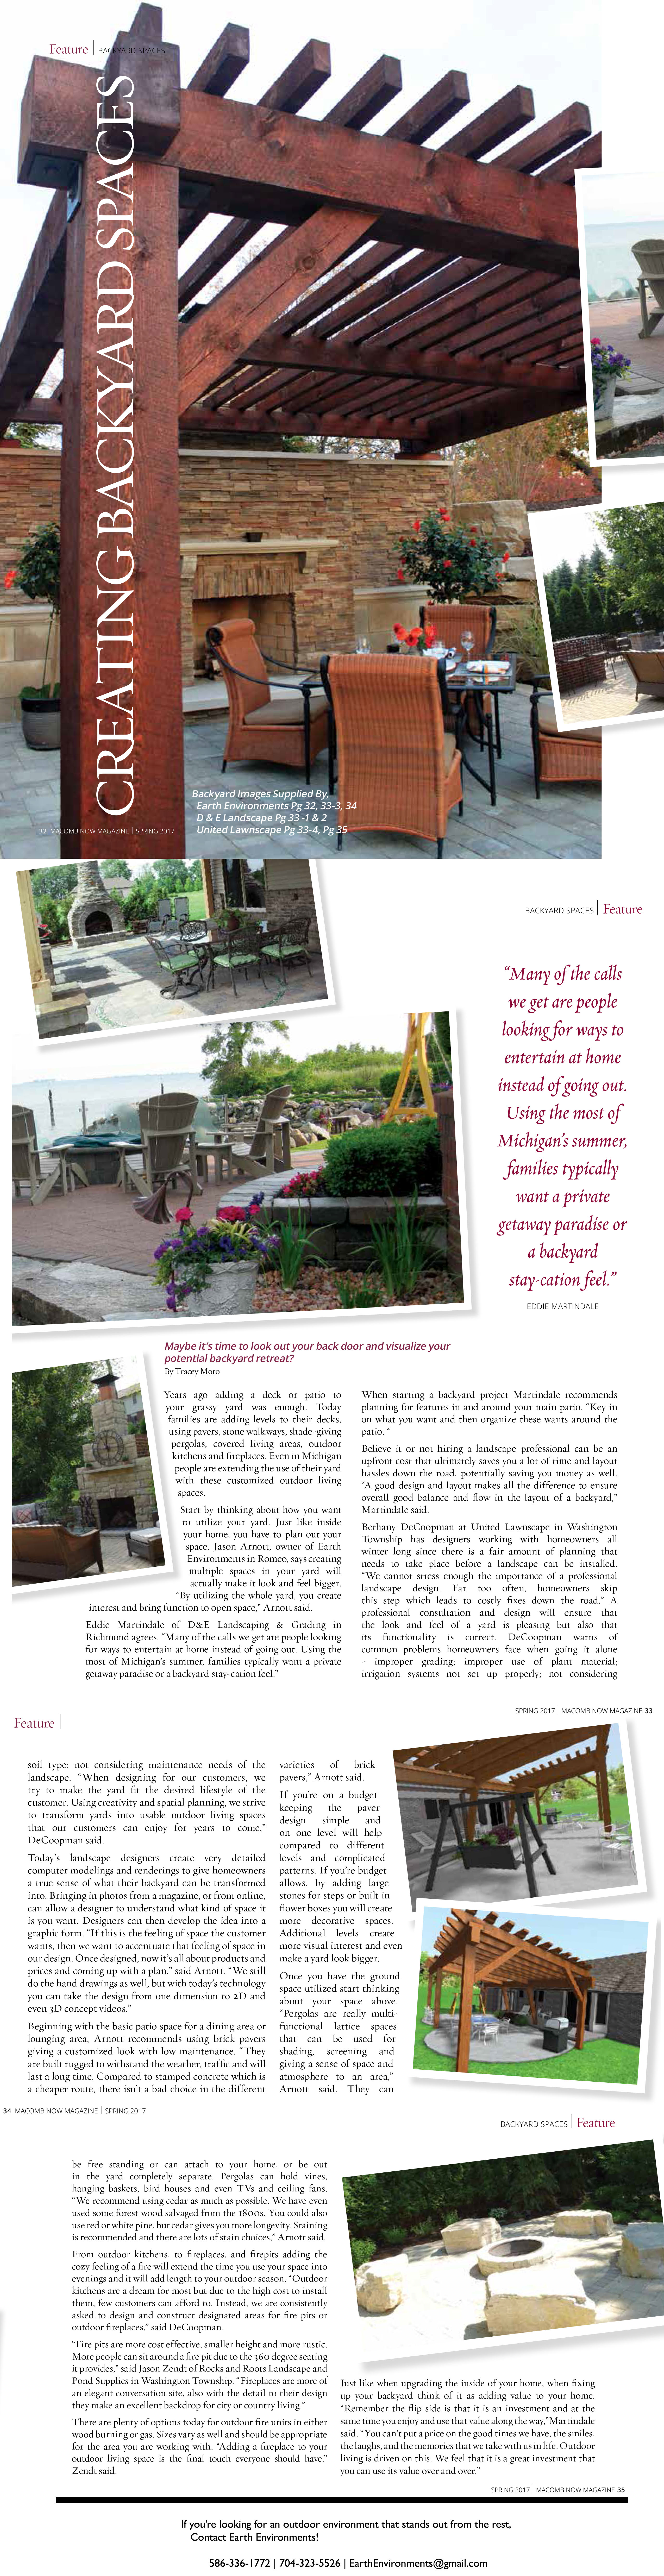 Earth Environments is featured in the Spring 2017 Edition of Macomb Now Magazine!  586-336-1772 | 704-323-5526 | EarthEnvironments@gmail.com